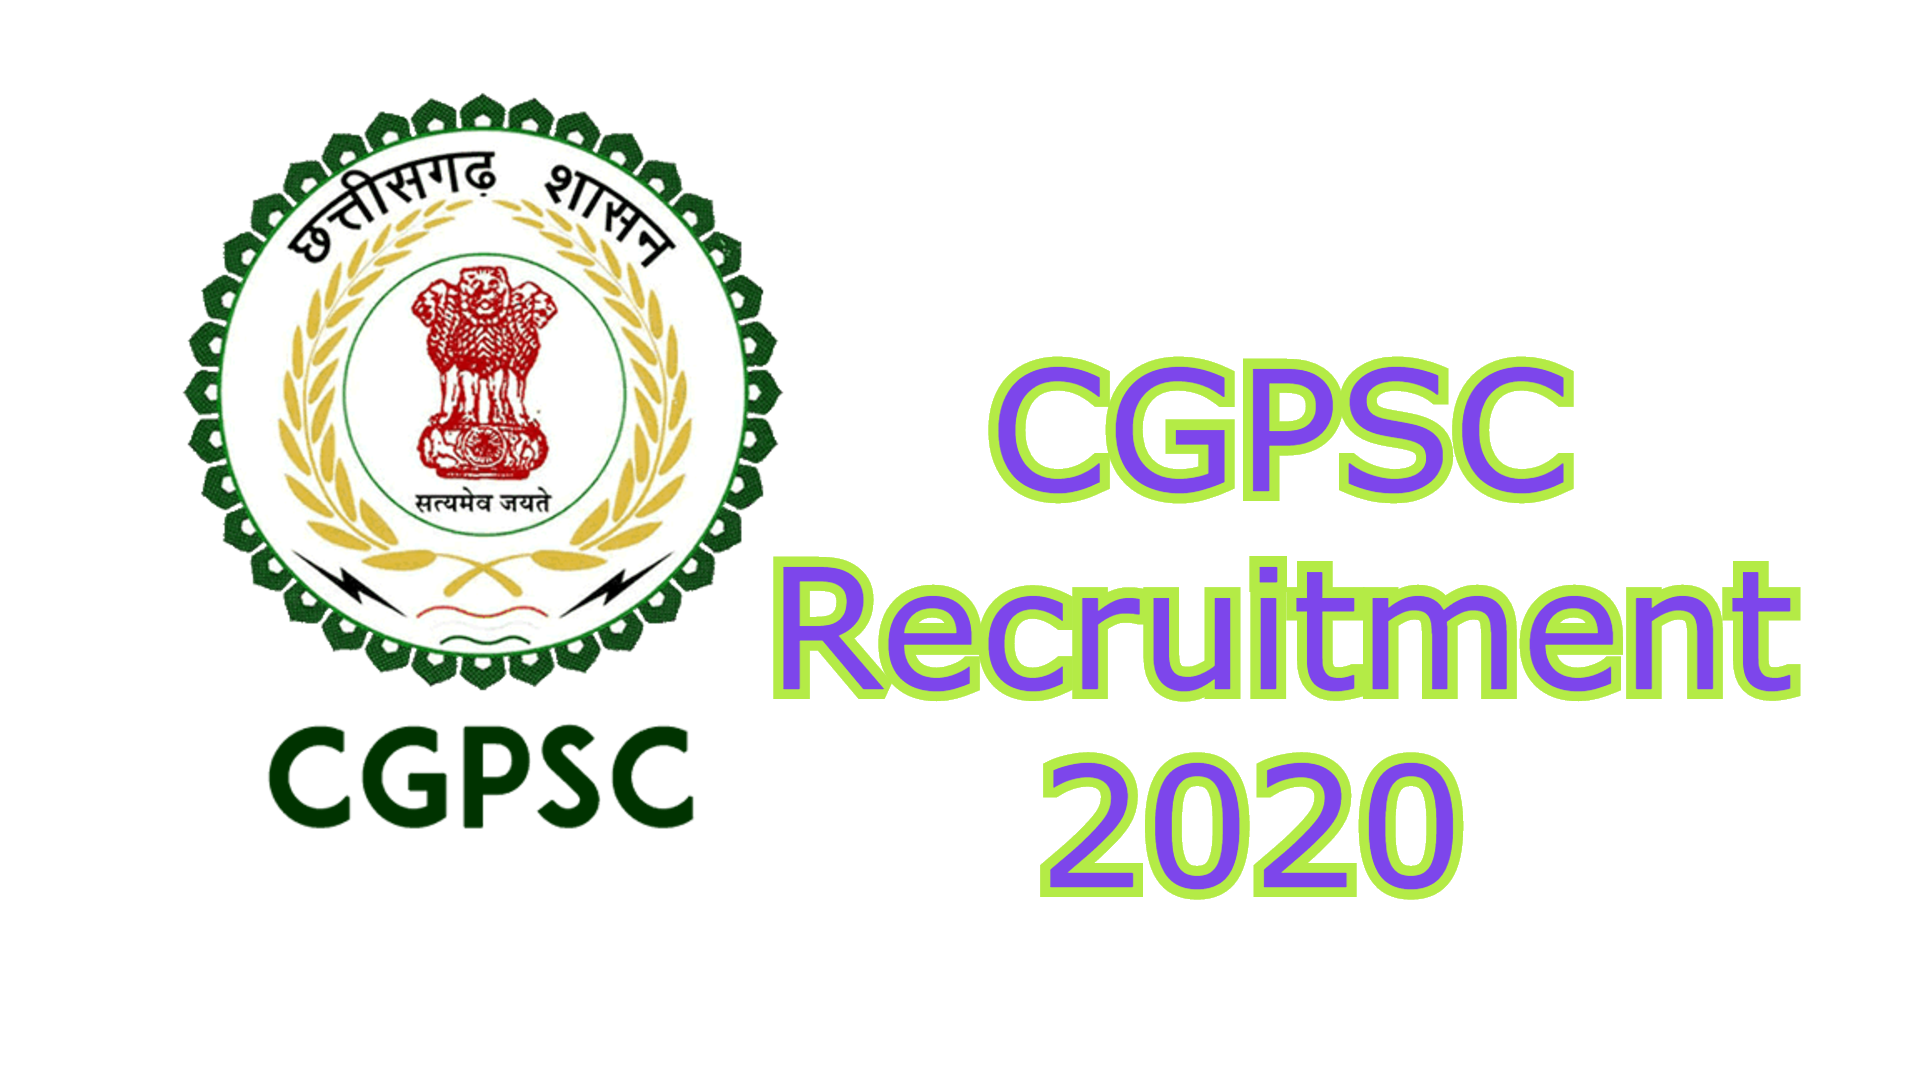 CGPSC Recruitment 2020 - Apply Online